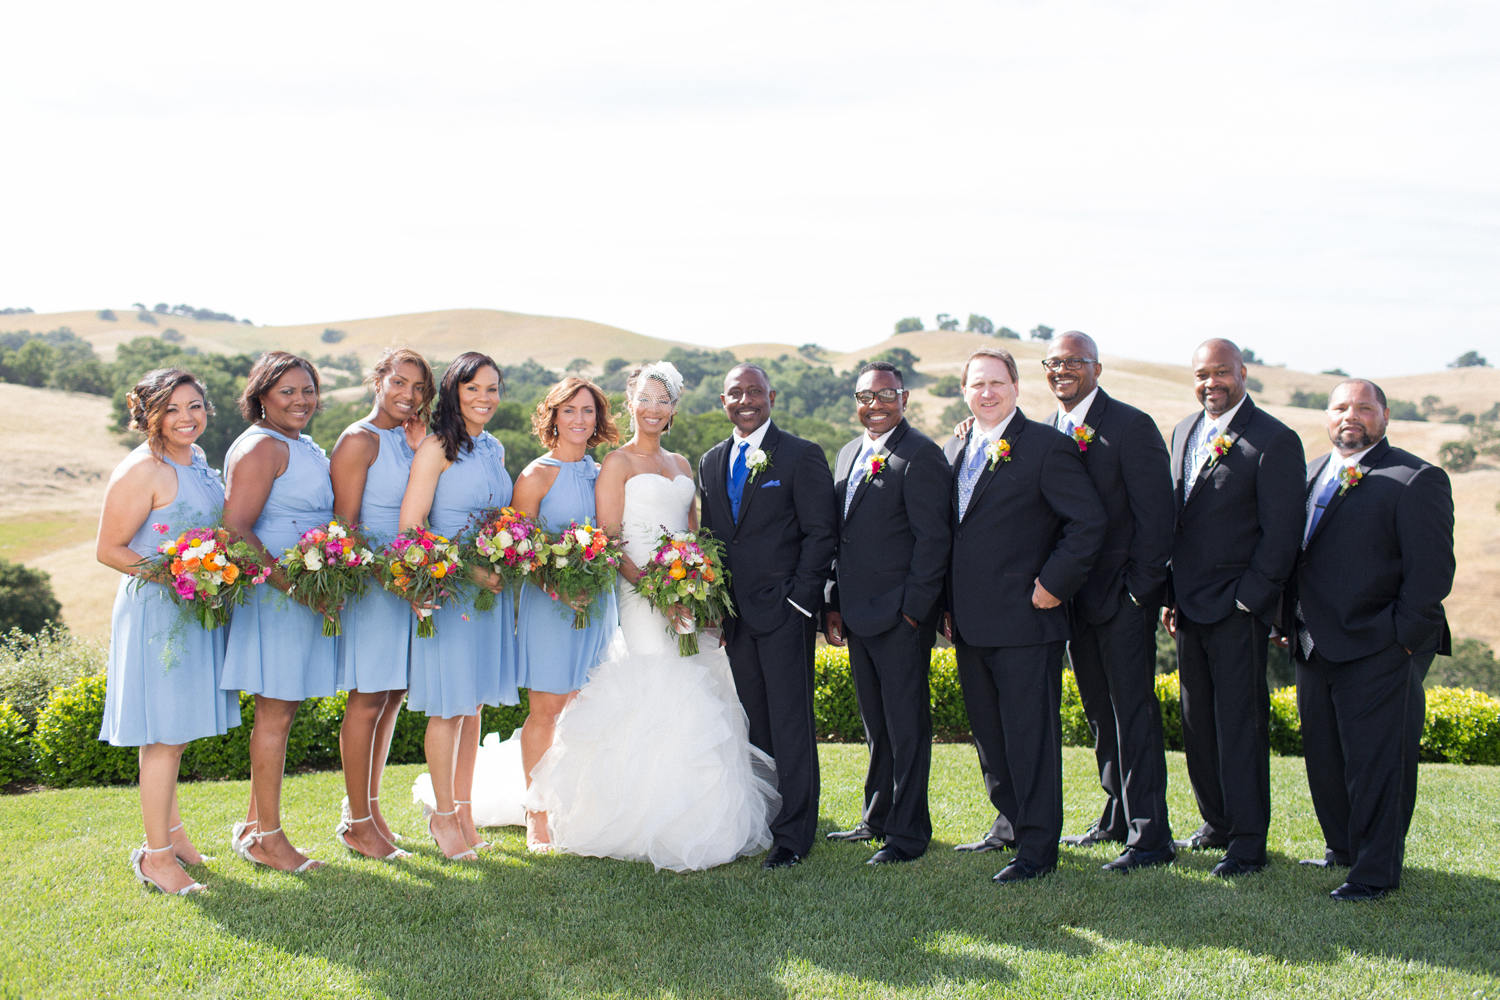 willow-heights-mansion-wedding-photography032.jpg